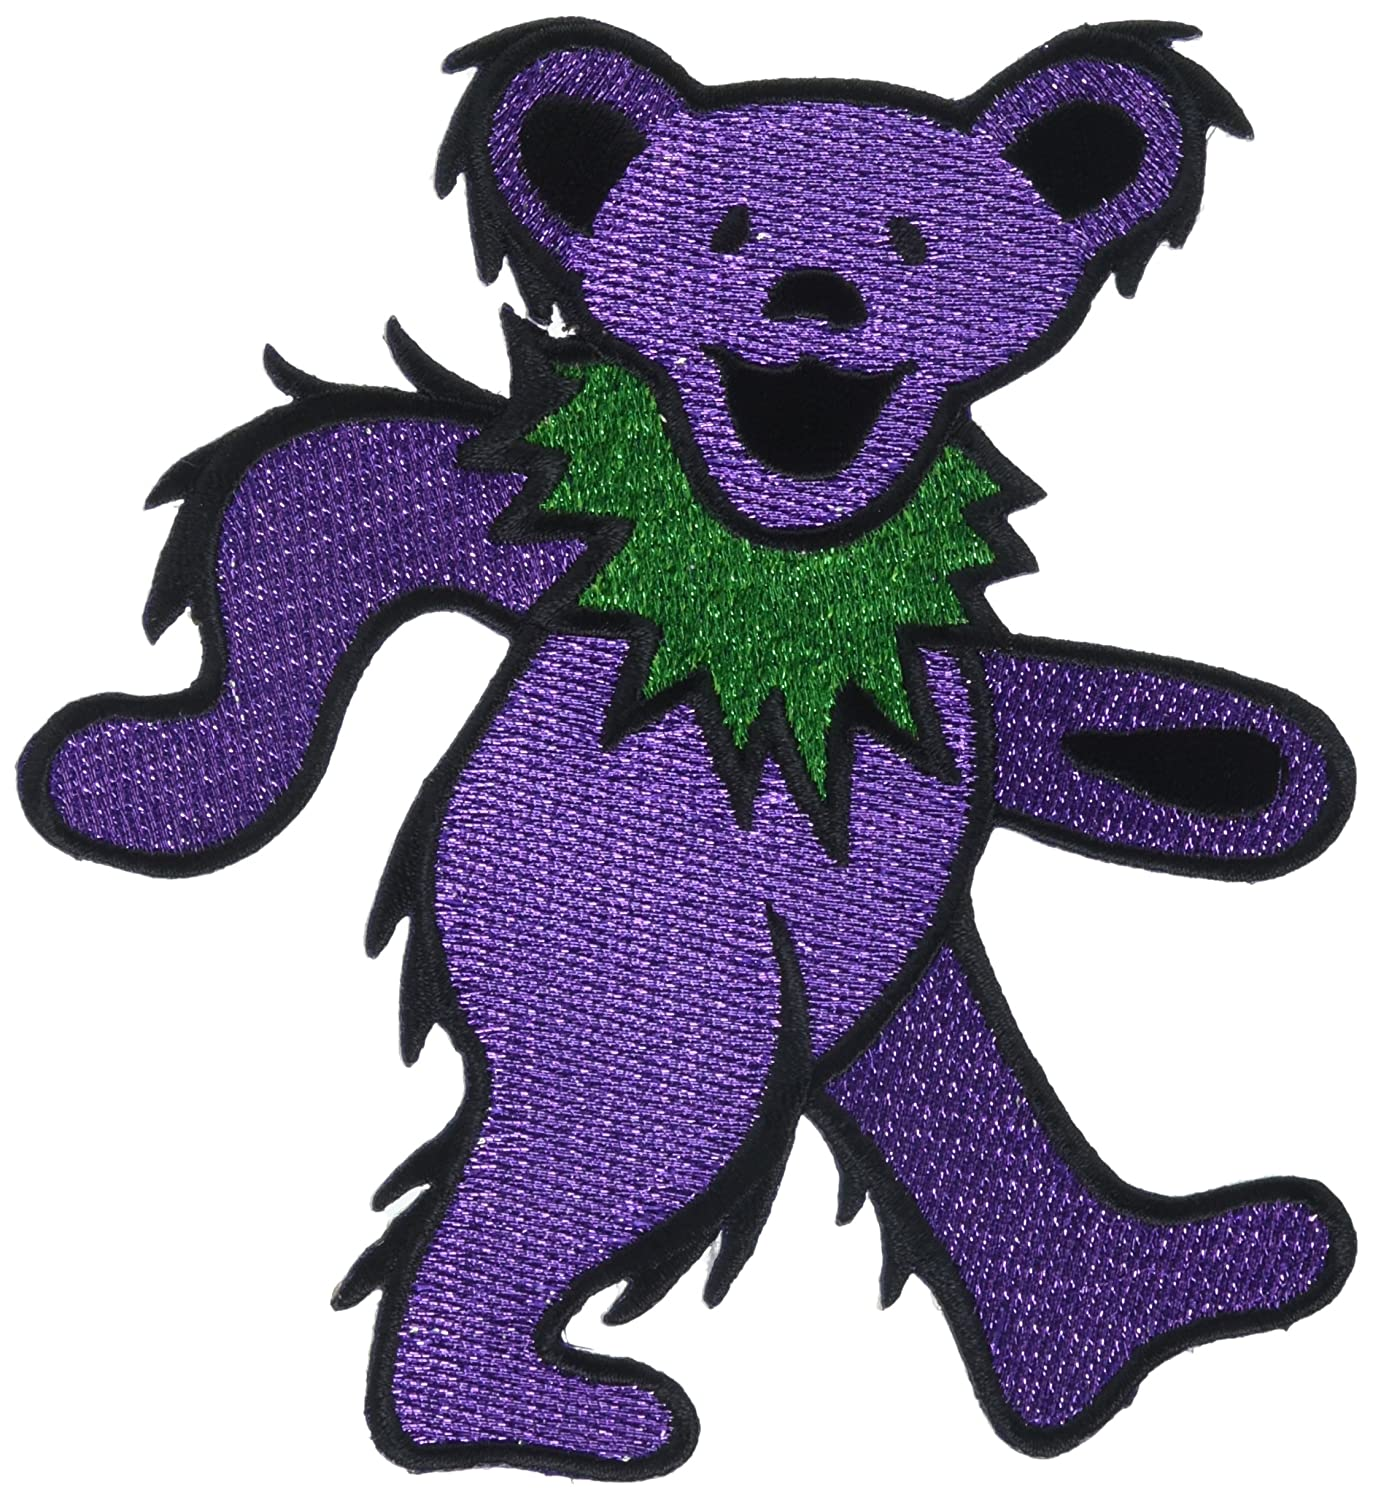 GRATEFUL DEAD Purple Bear Glitter, Officially Licensed Original Artwork, Iron-On / Sew-On, 5' x 4.7' Embroidered PATCH toppa 5 x 4.7 Embroidered PATCH toppa Officially Licensed & Trademarked Products P-1223-G